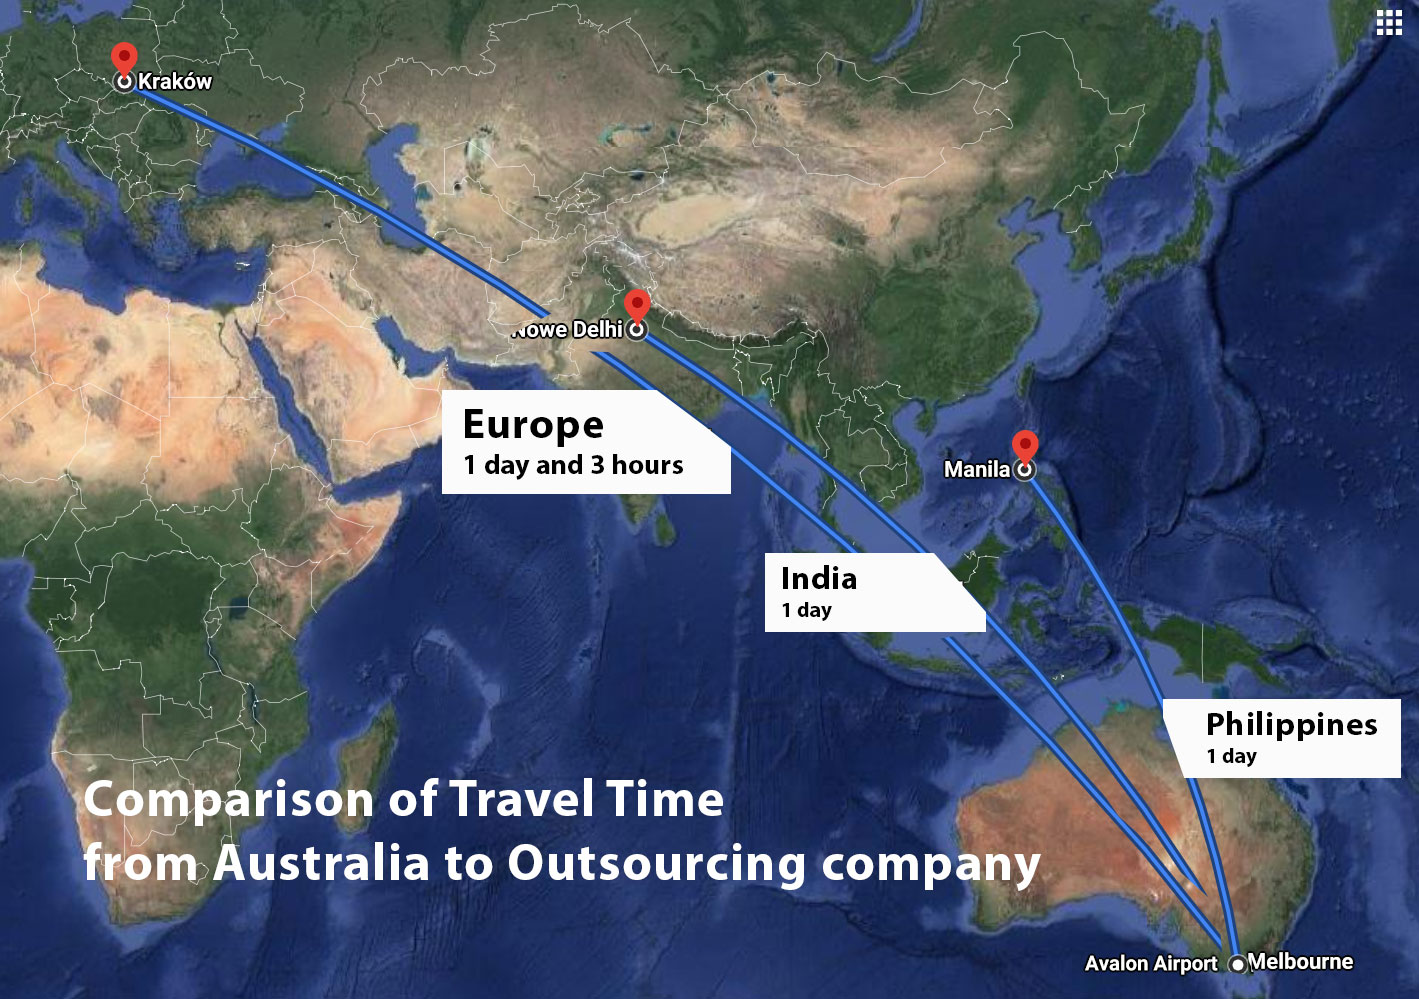 comparison travel distance from australia to oursourcing company in europe